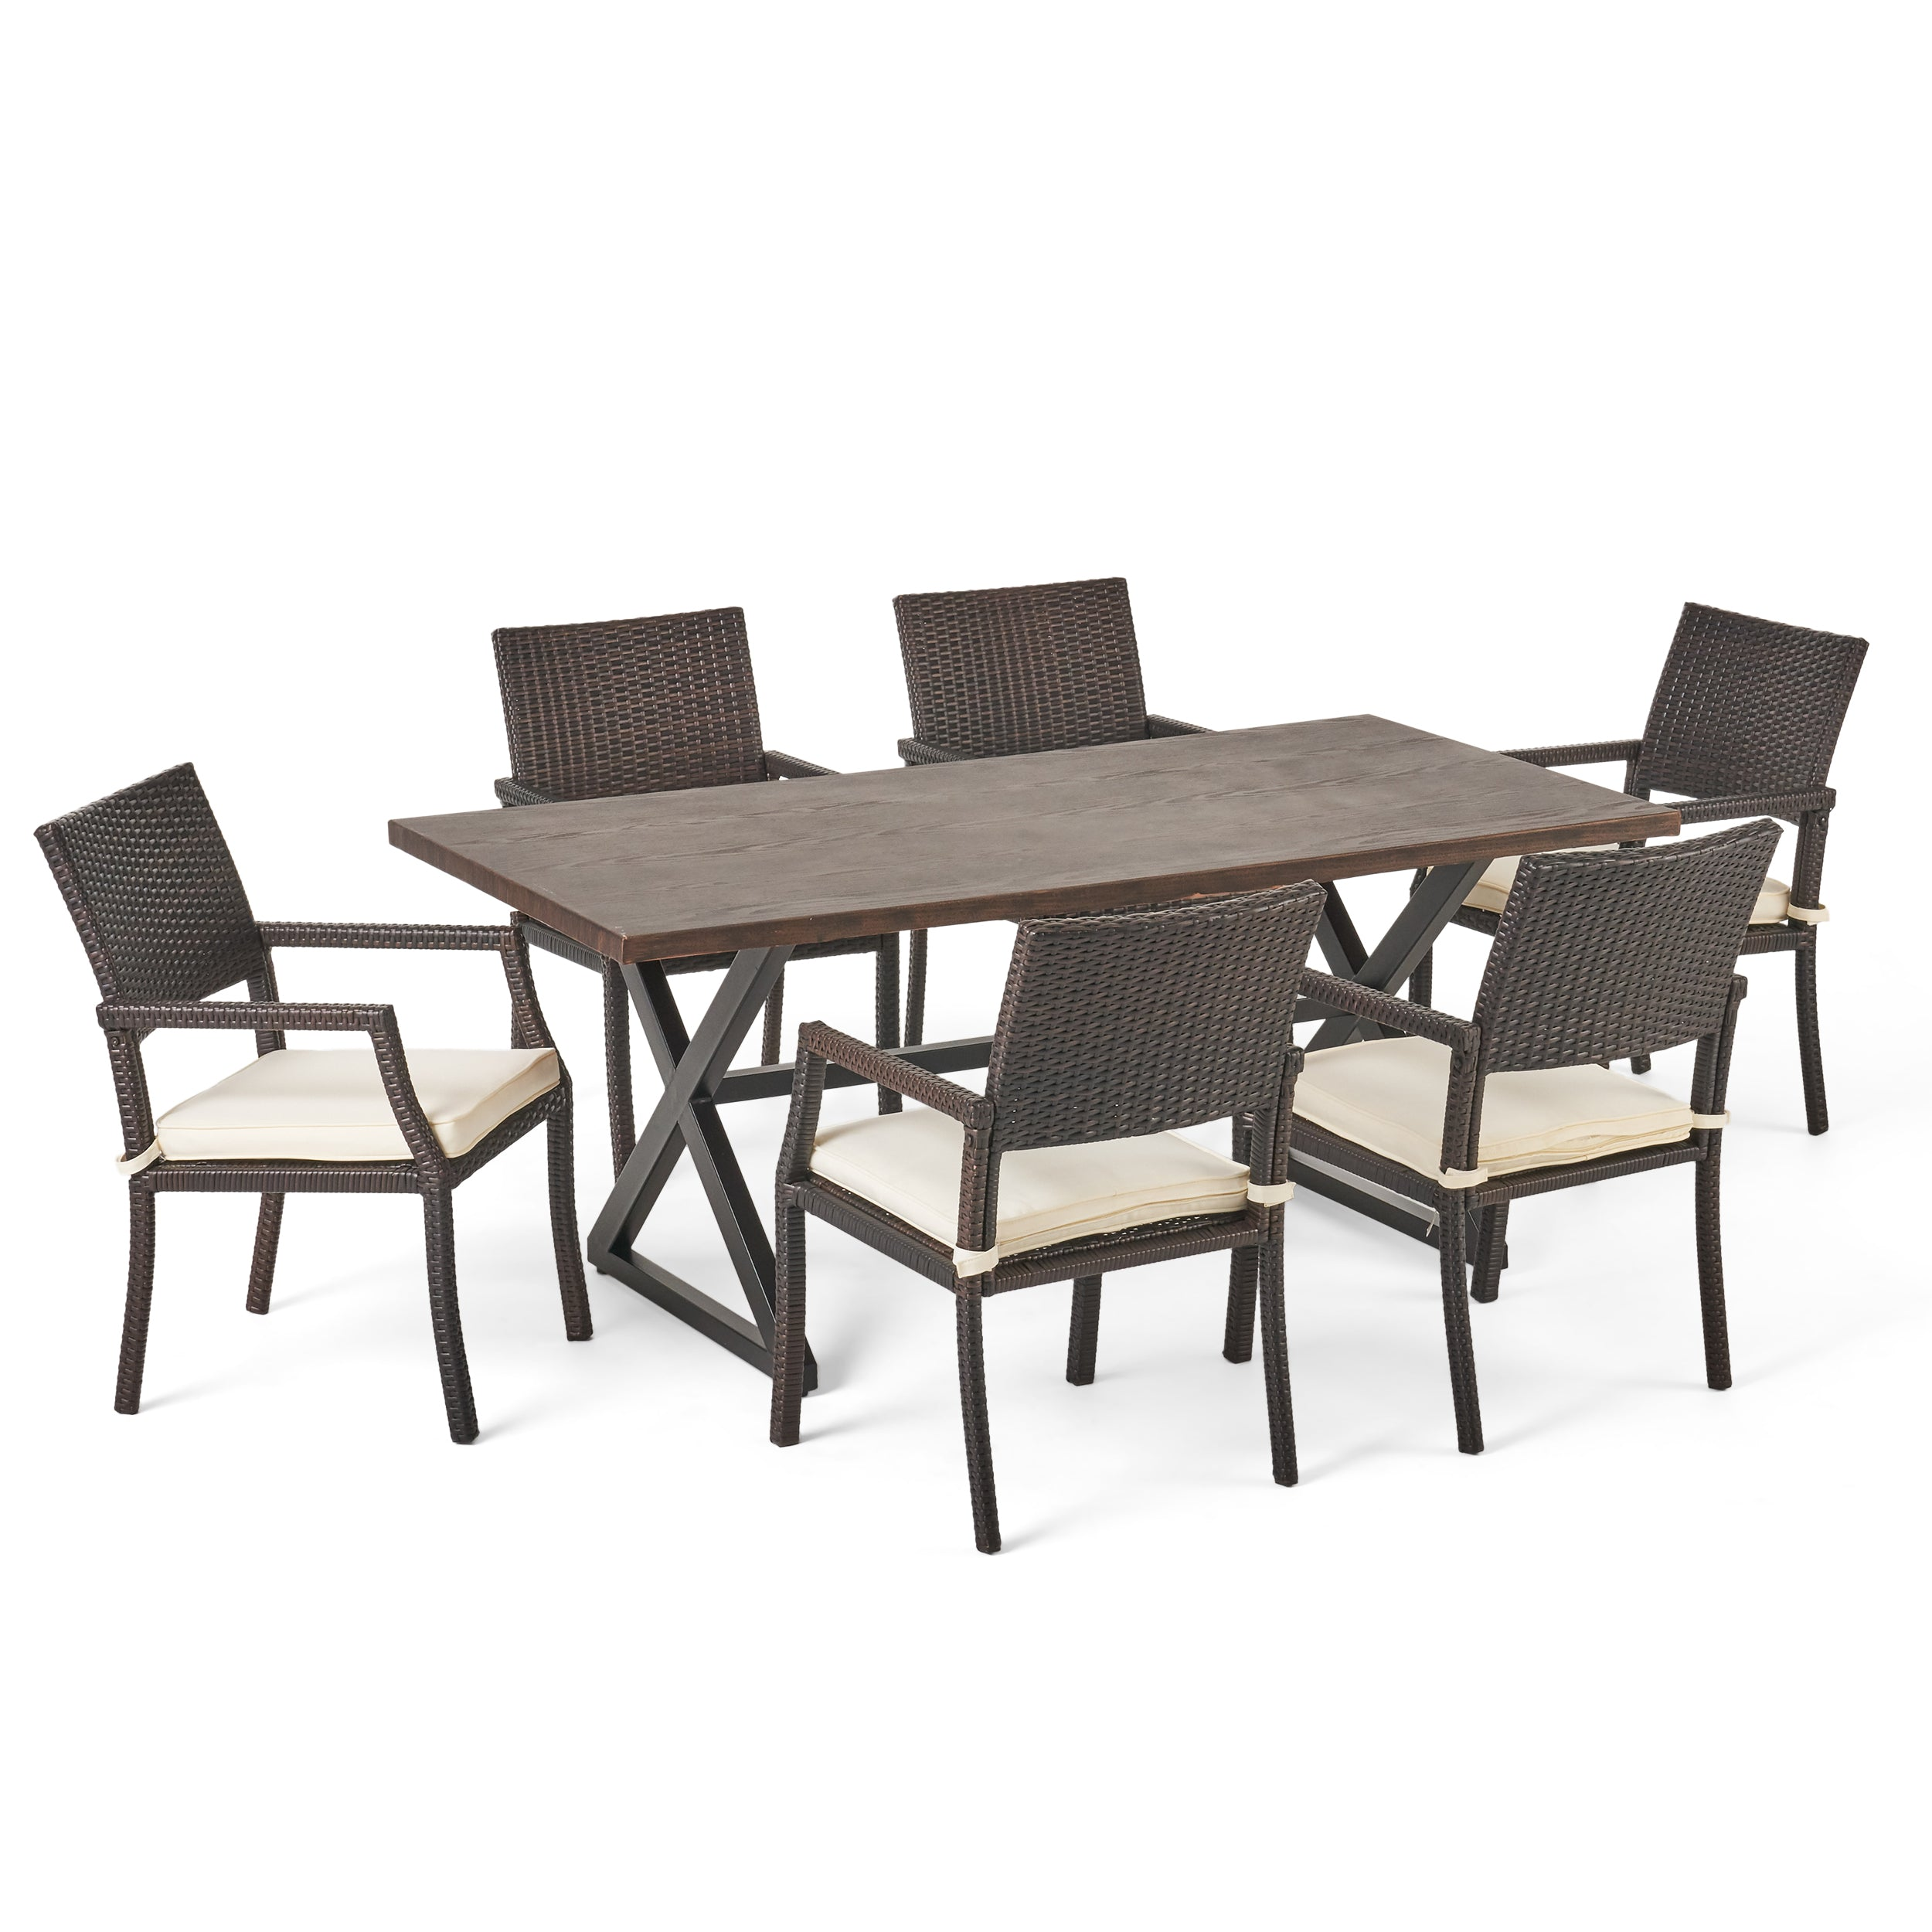 Alania Outdoor 7 Piece Aluminum Dining Set with Wicker Dining Chairs Default Title